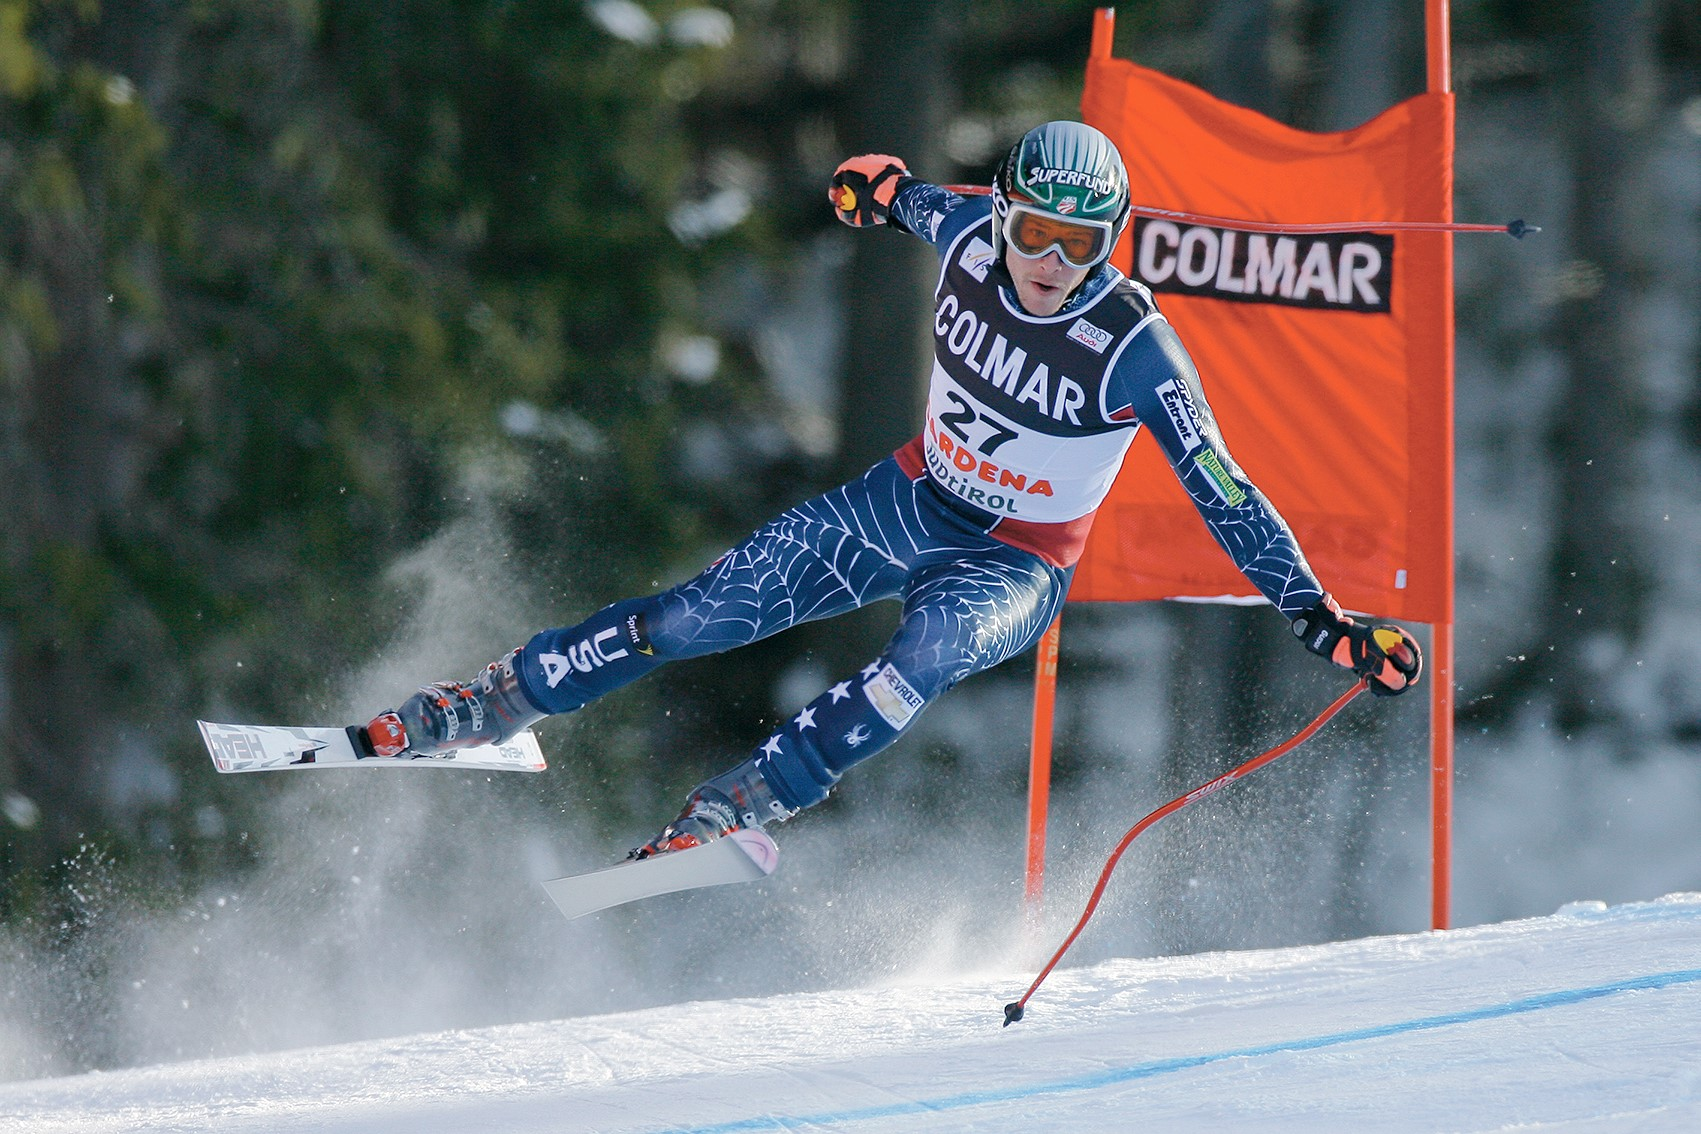 Bode Miller flying